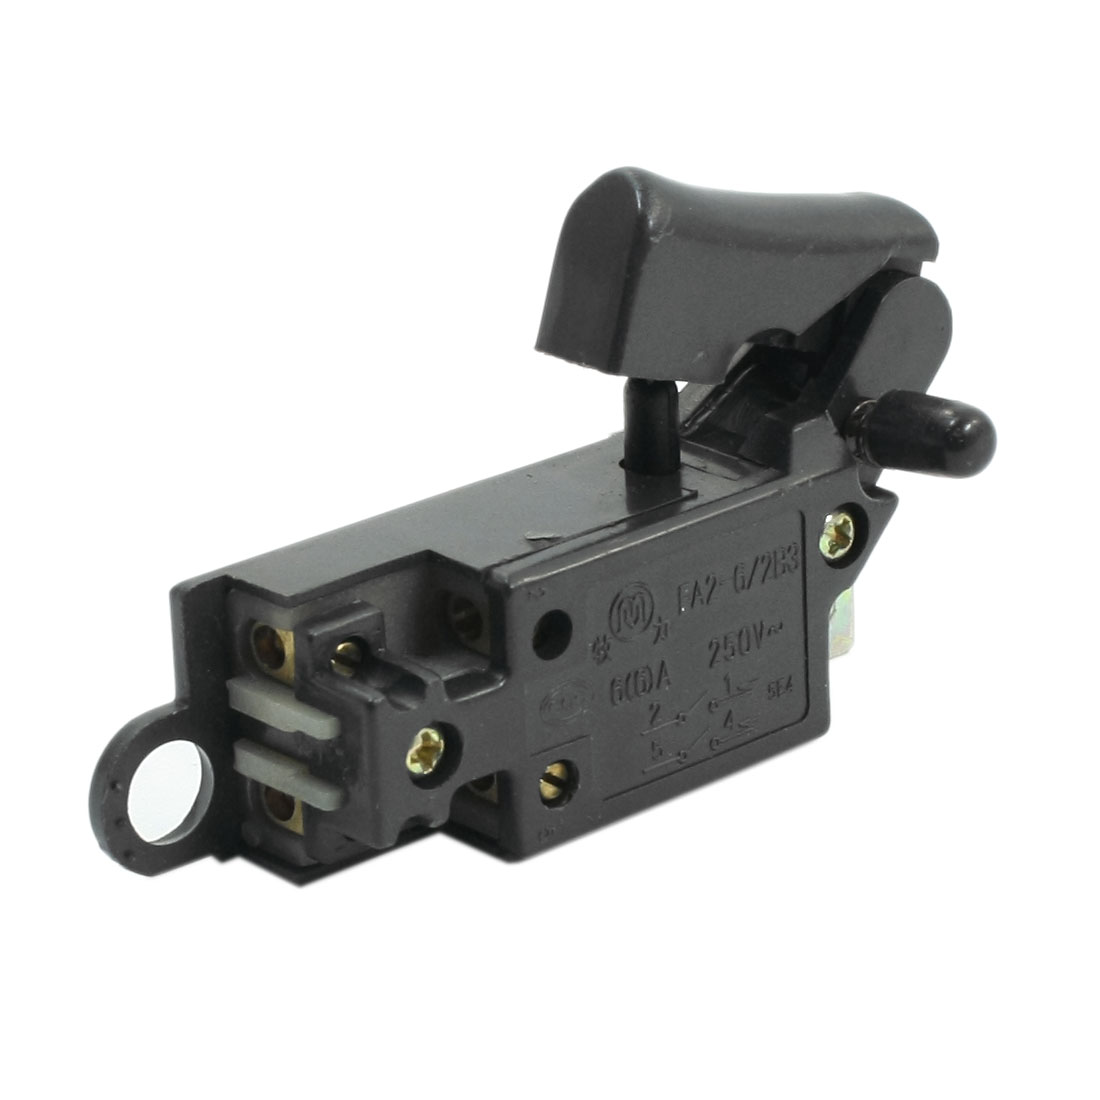 Replacing DPST 2N/O Trigger Switch for Hitachi 150 G15SA Angle Grinder